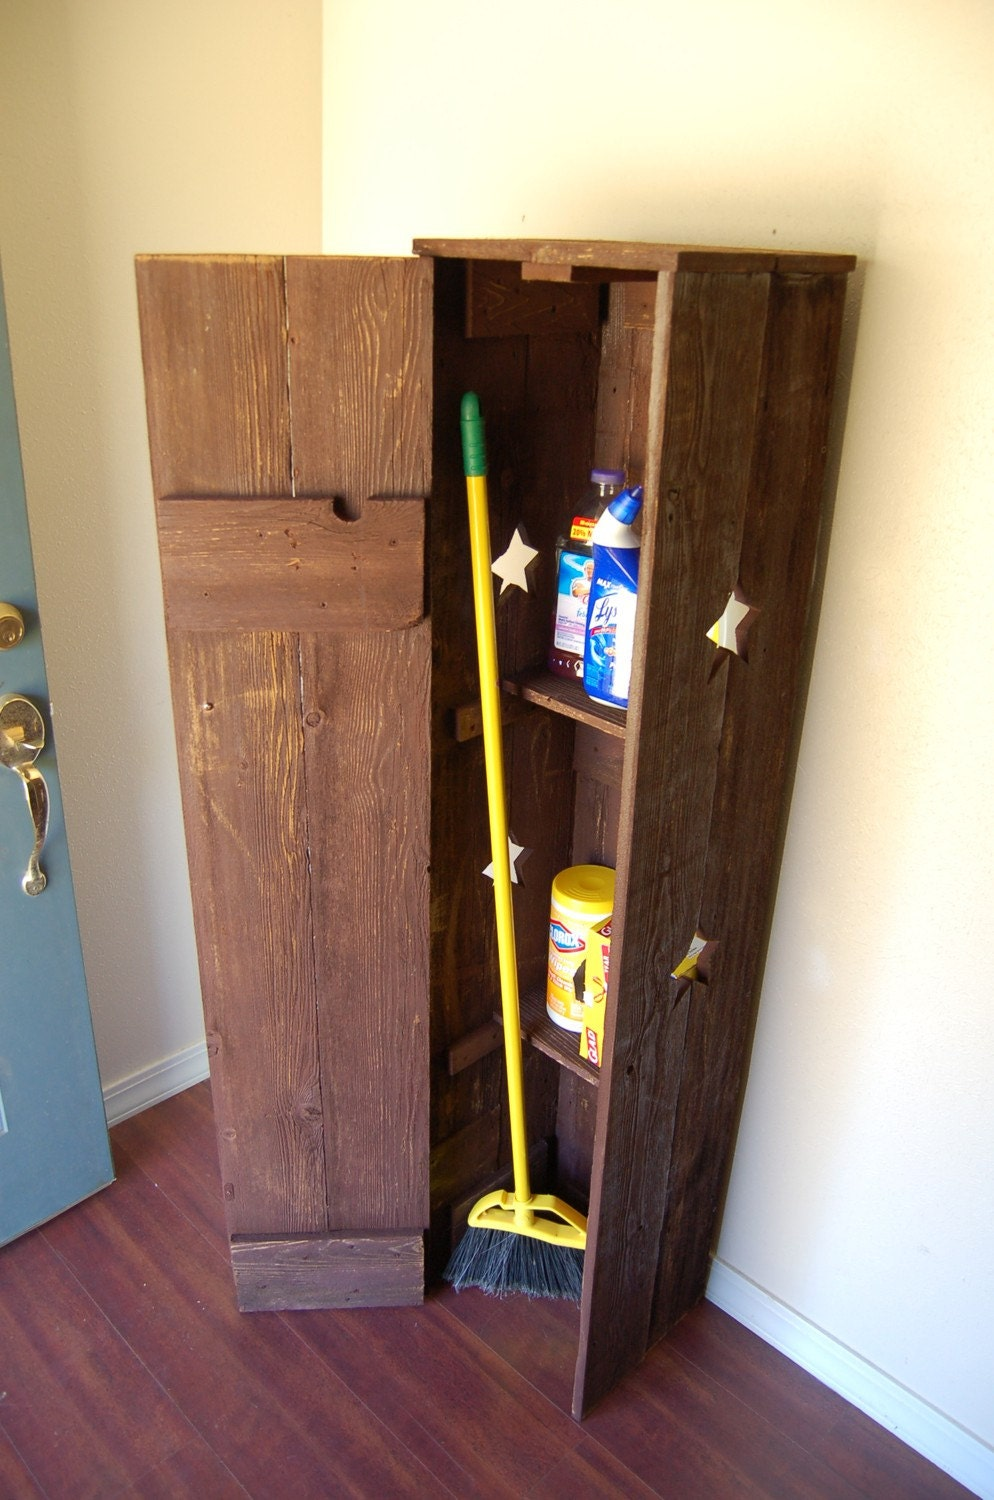 Cabinet broom closet pantry laundry room cabinet kitchen for Kitchen closet